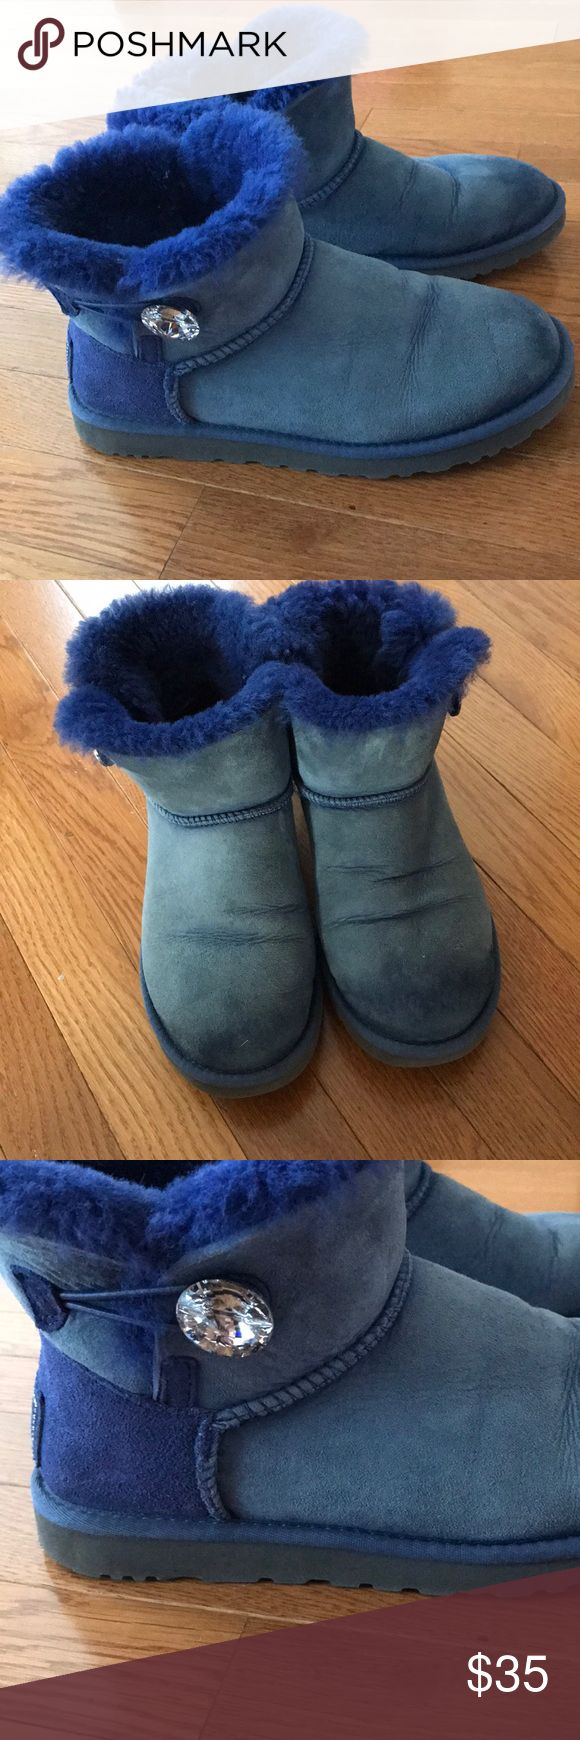 UGG Boots Uggs Blue Rare Rhinestone Size 8 UGG Boots Uggs Blue Rare Crystal Studded Size 8. Preowned in excellent condition. Has rhinestone studs on the back and a giant one on the sides. Very warm and cozy. Smoke free clean home. Ankle boots. Can be rolled down for a comfy look. They fit sizes 8-9. UGG Shoes Ankle Boots & Booties